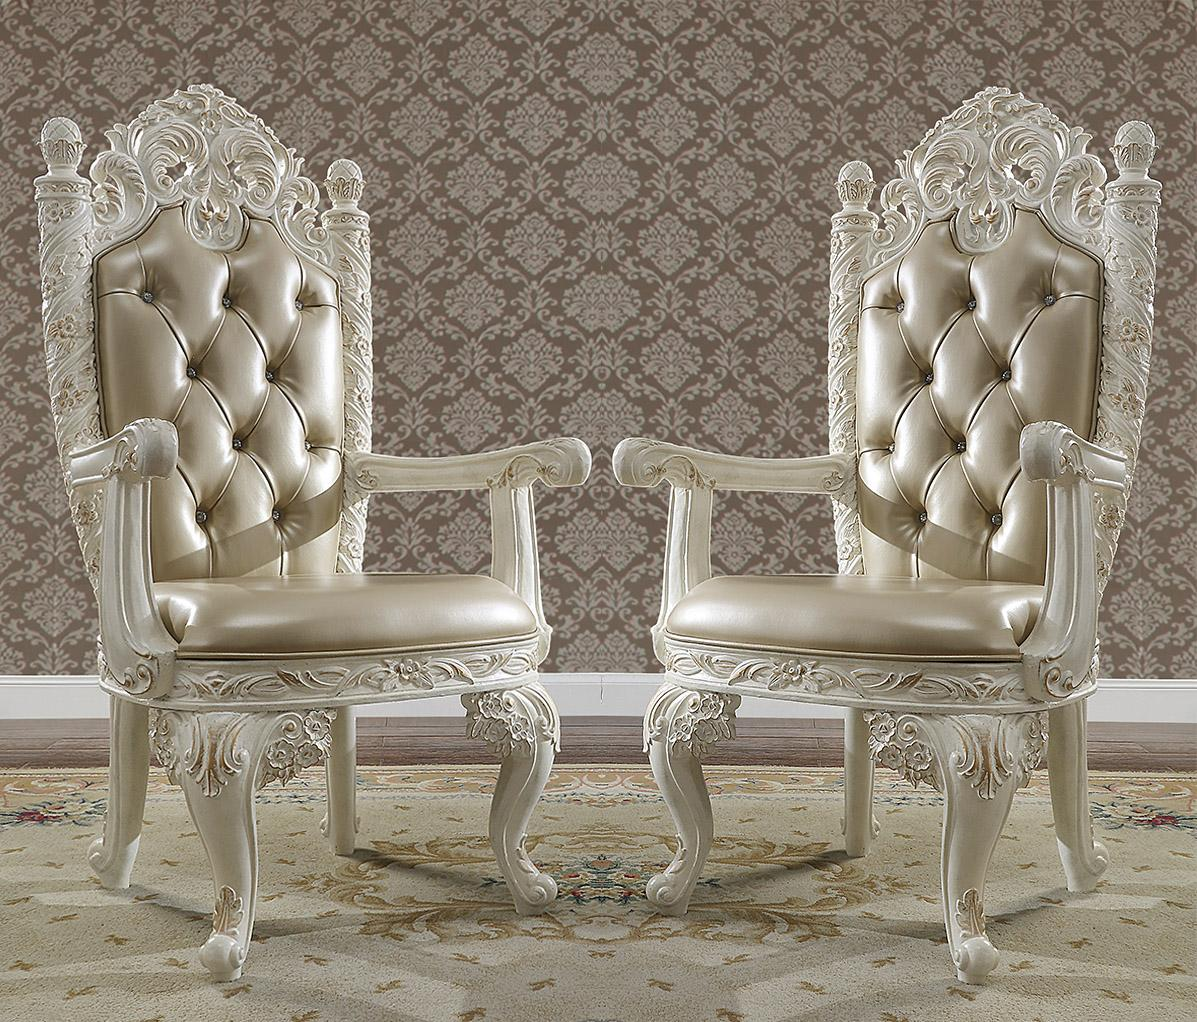 Traditional Gold, Antique White Leather and Wood Arm Chairs 2 pcs HD-1806 by Homey Design